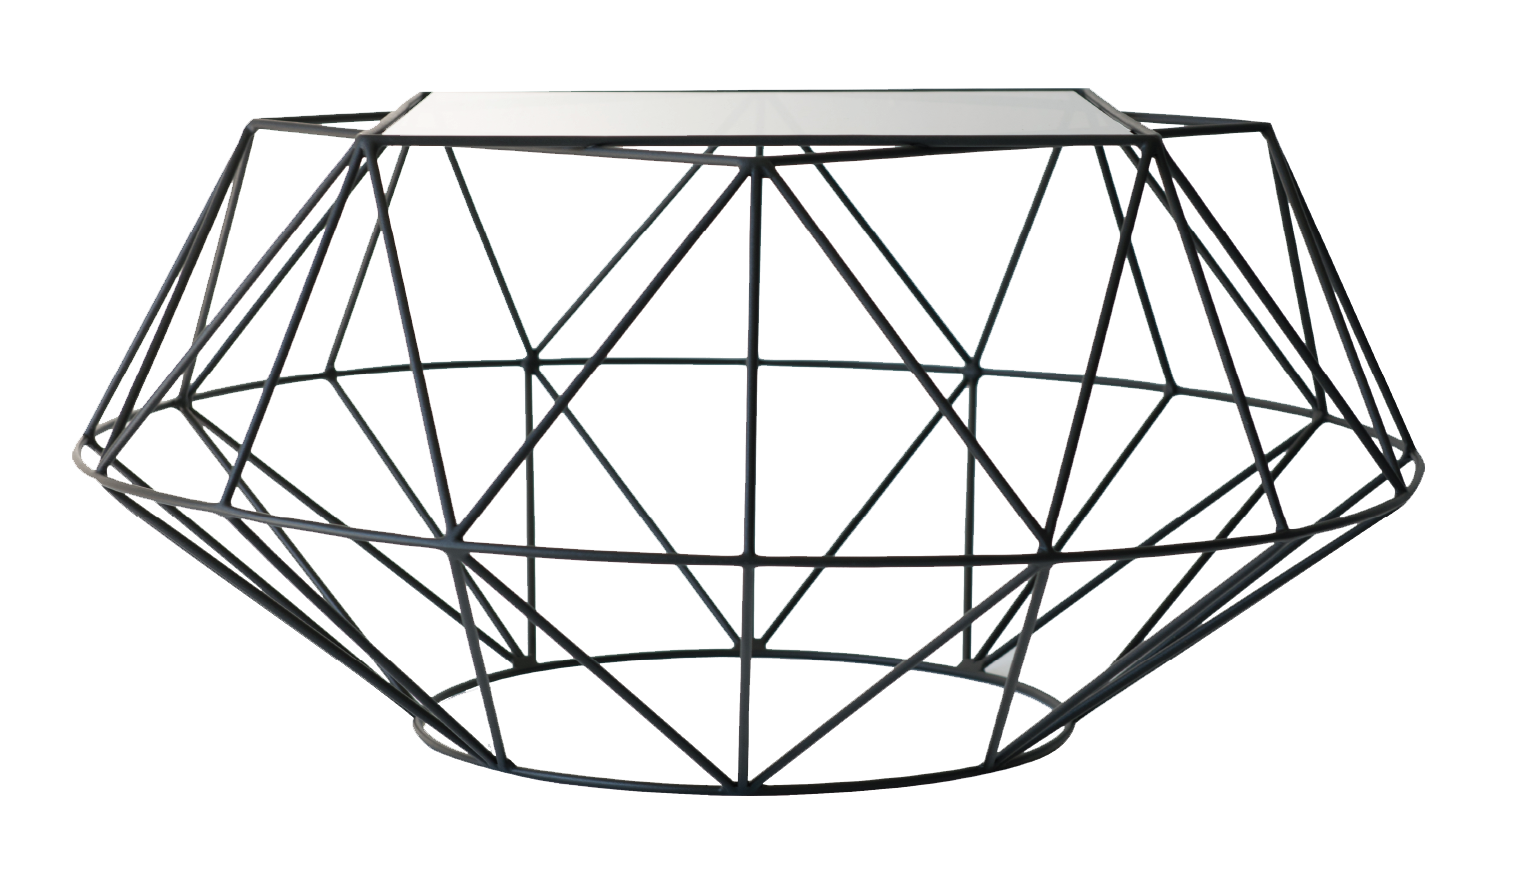 Inspired as part of our Geometric Facet range, this modern coffee table sets a standard for style that appeals to various tastes and interiors. Available in two sizes.